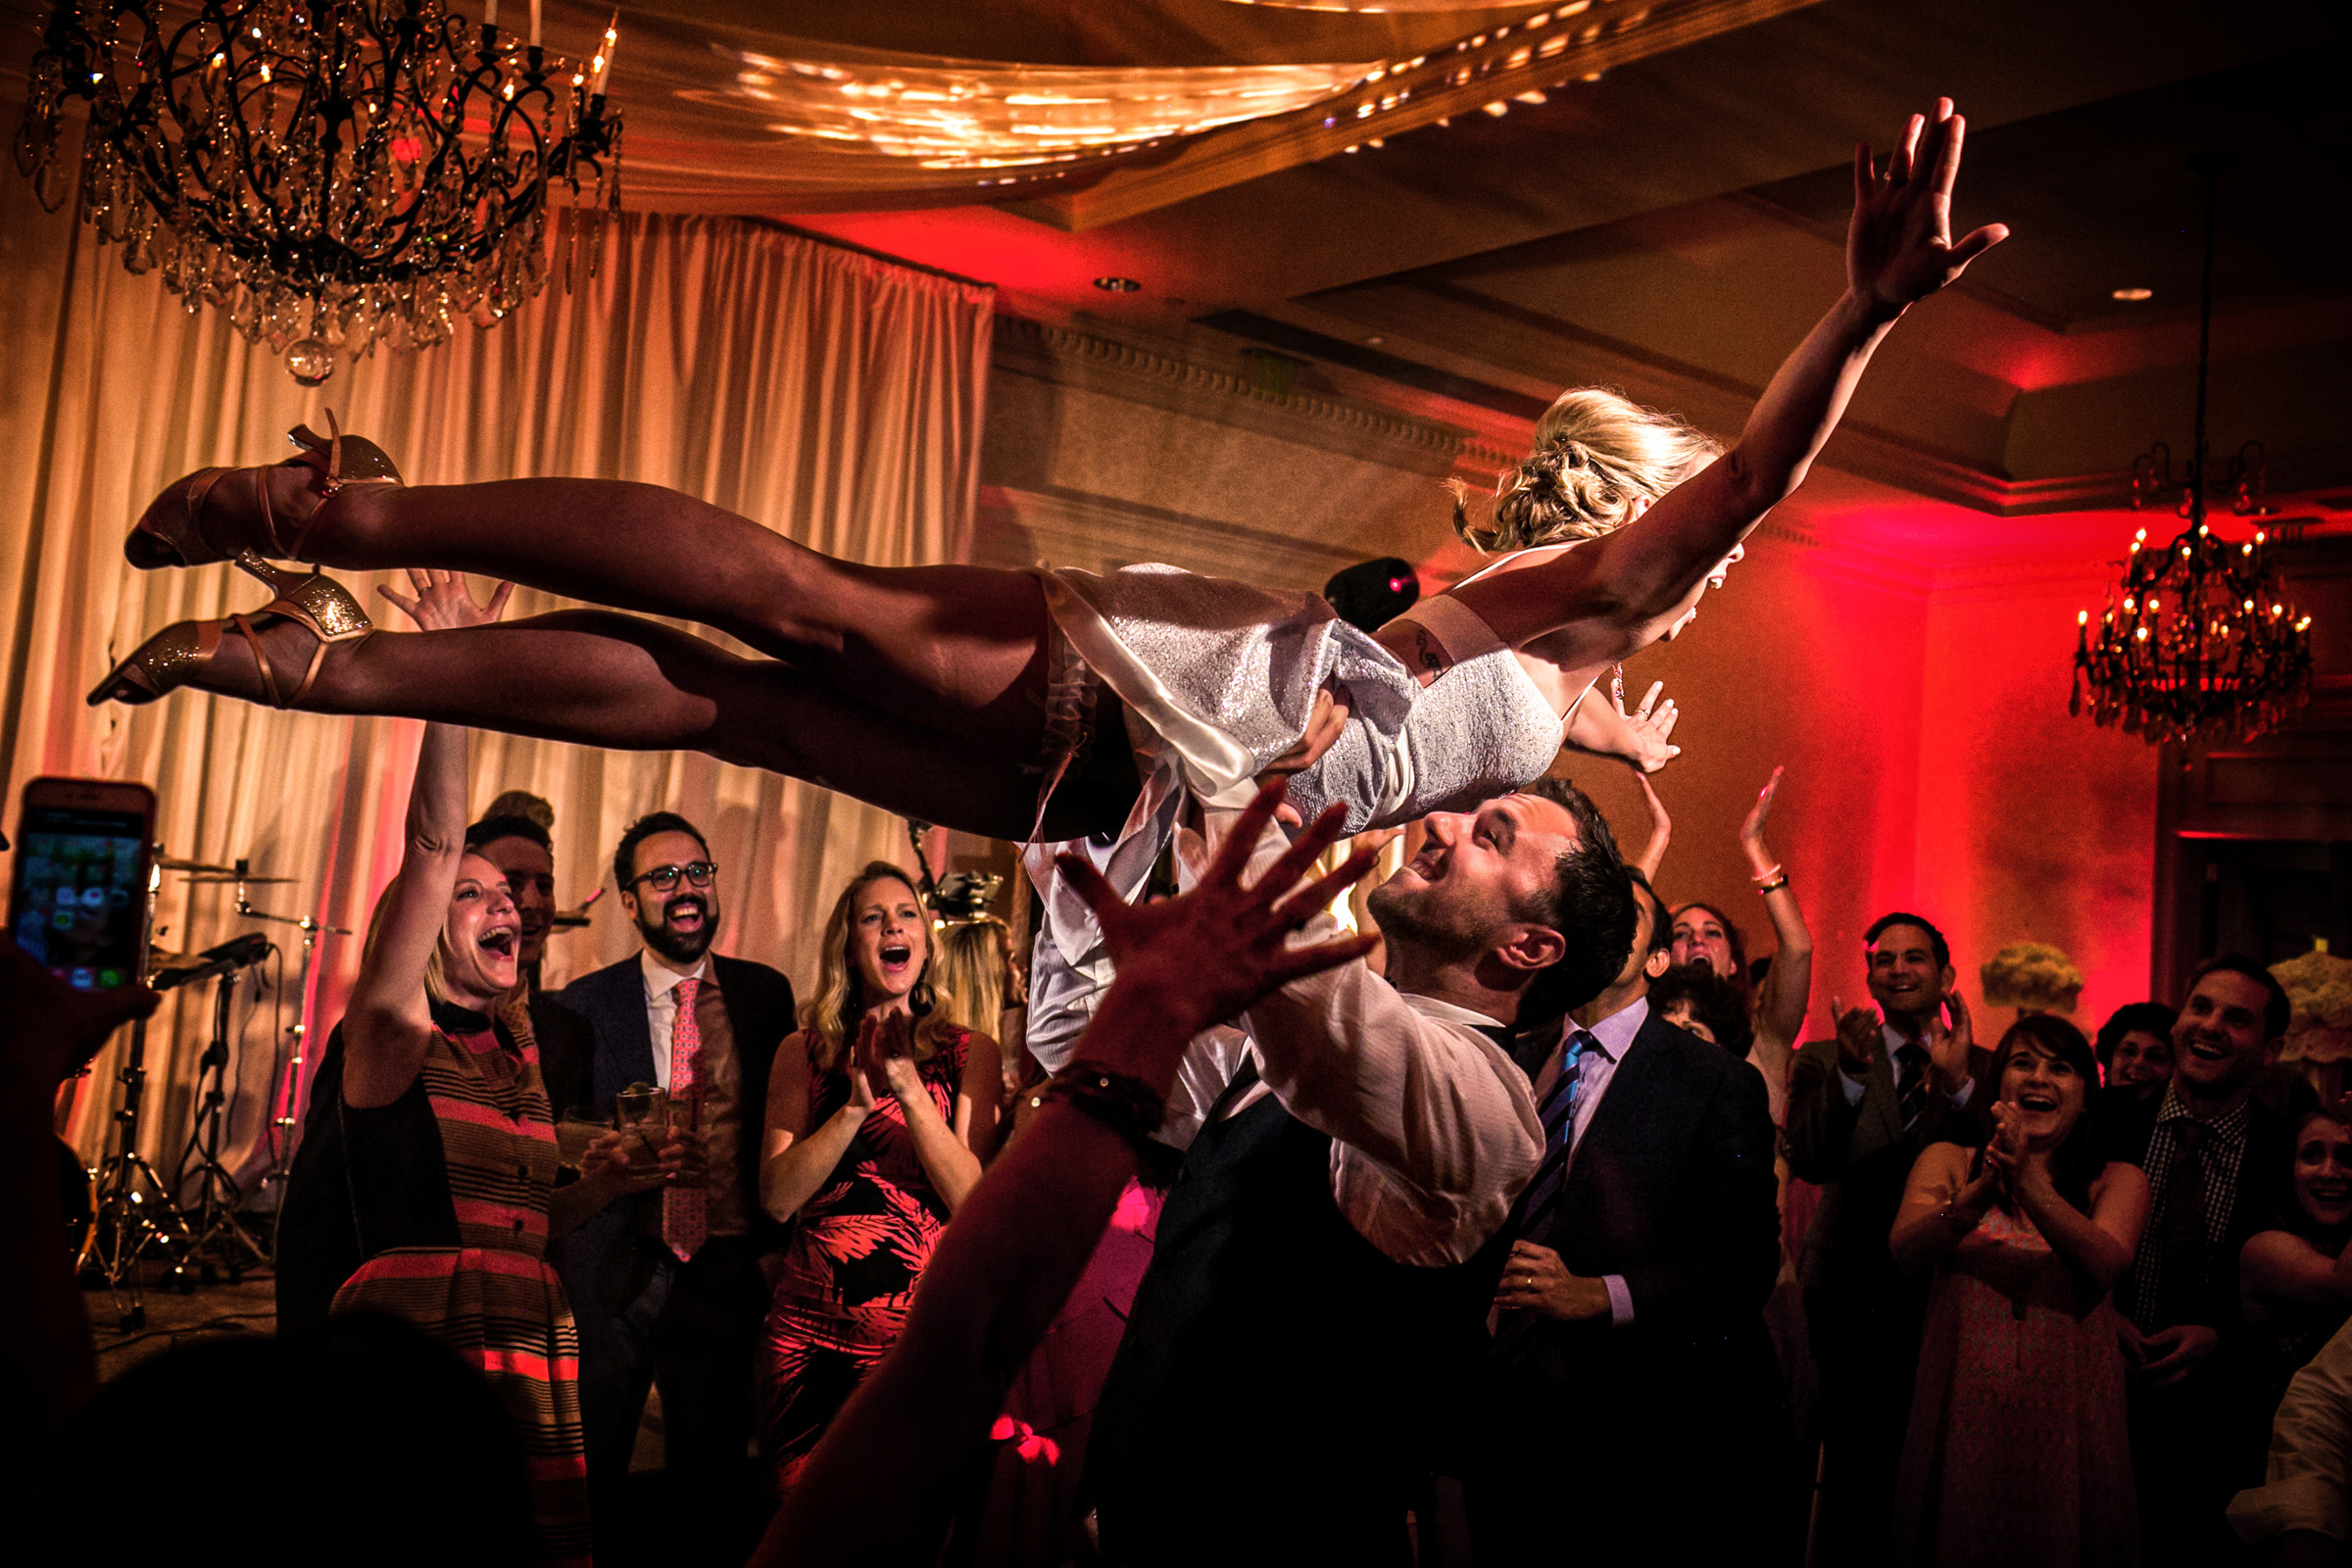 aerial bride at dance party - photo by Christophe Viseux Photography